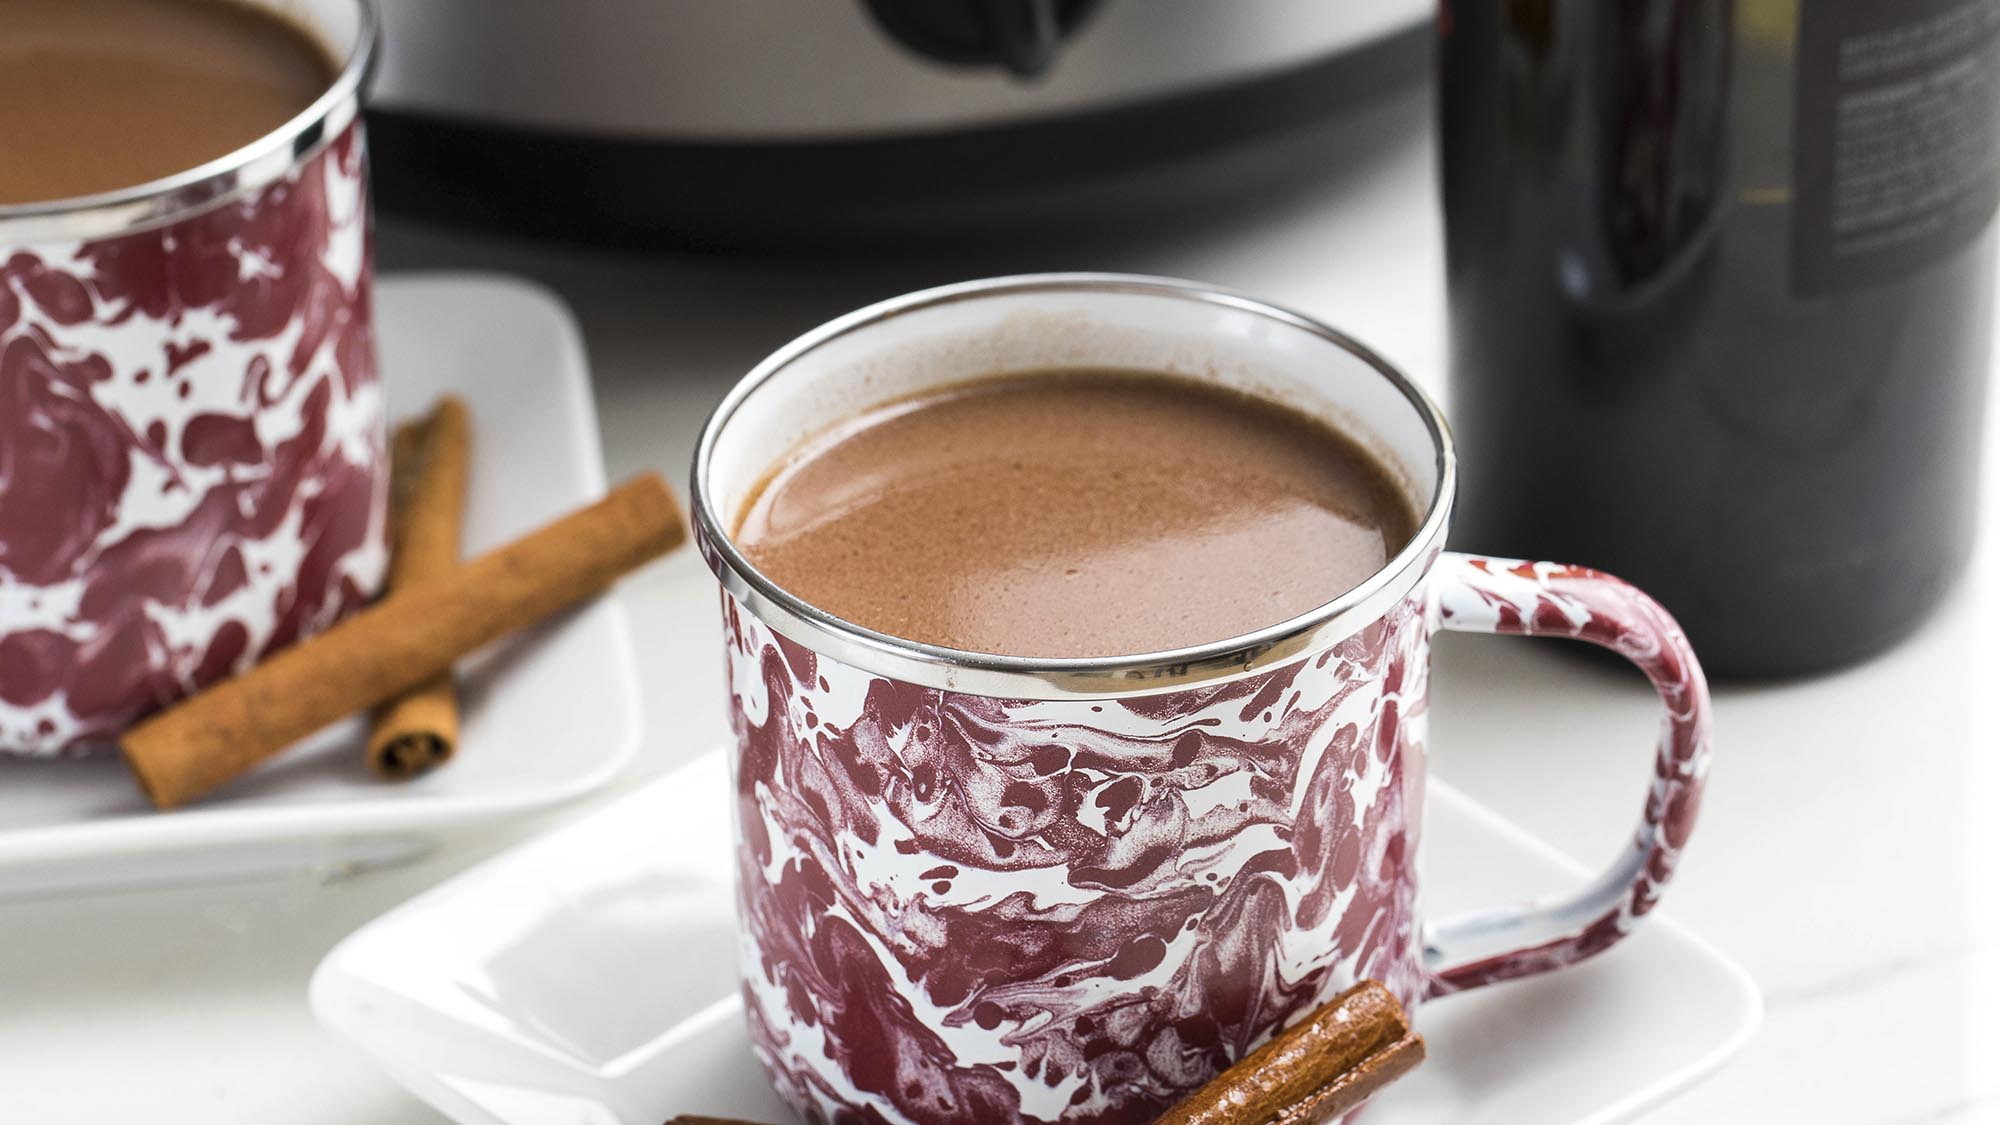 slow_cooker_red_wine_hot_chocolate_2000x1125.jpg